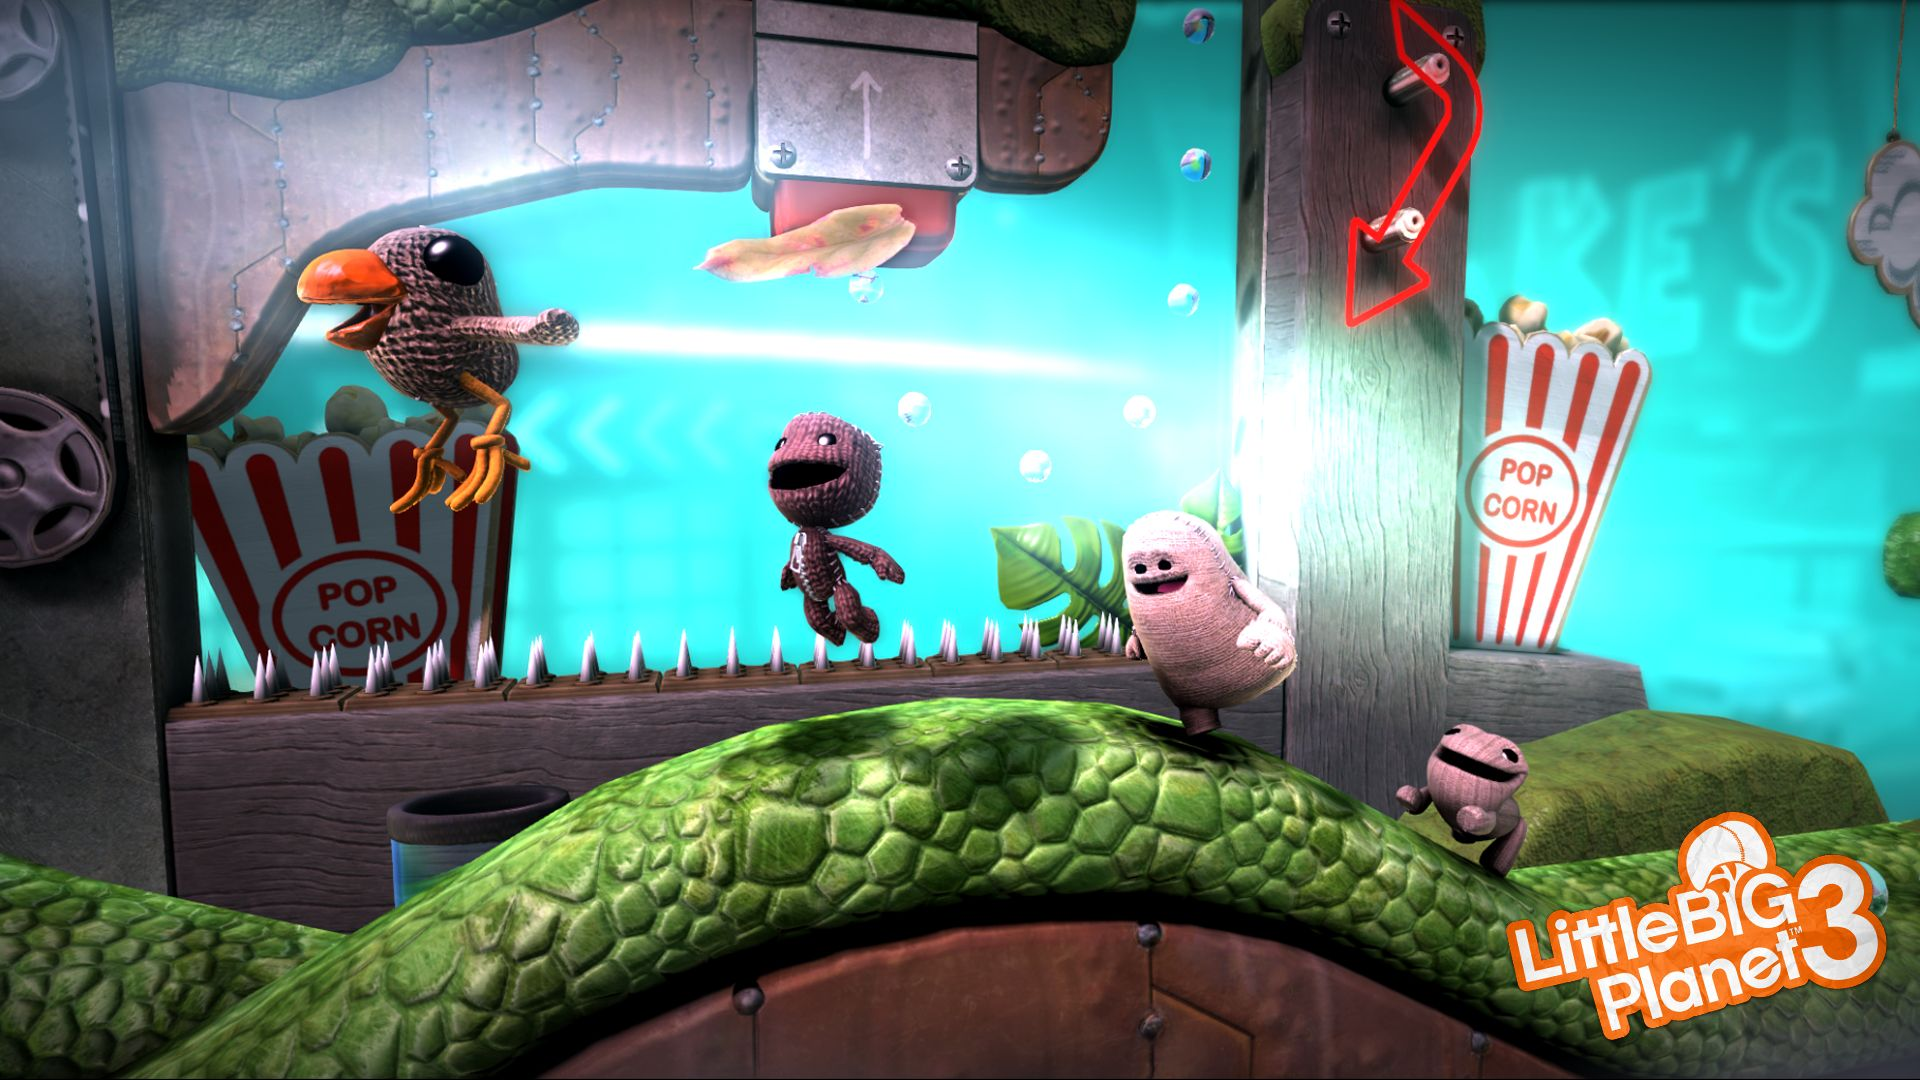 LittleBigPlanet 3 - what kind of game will you make it?